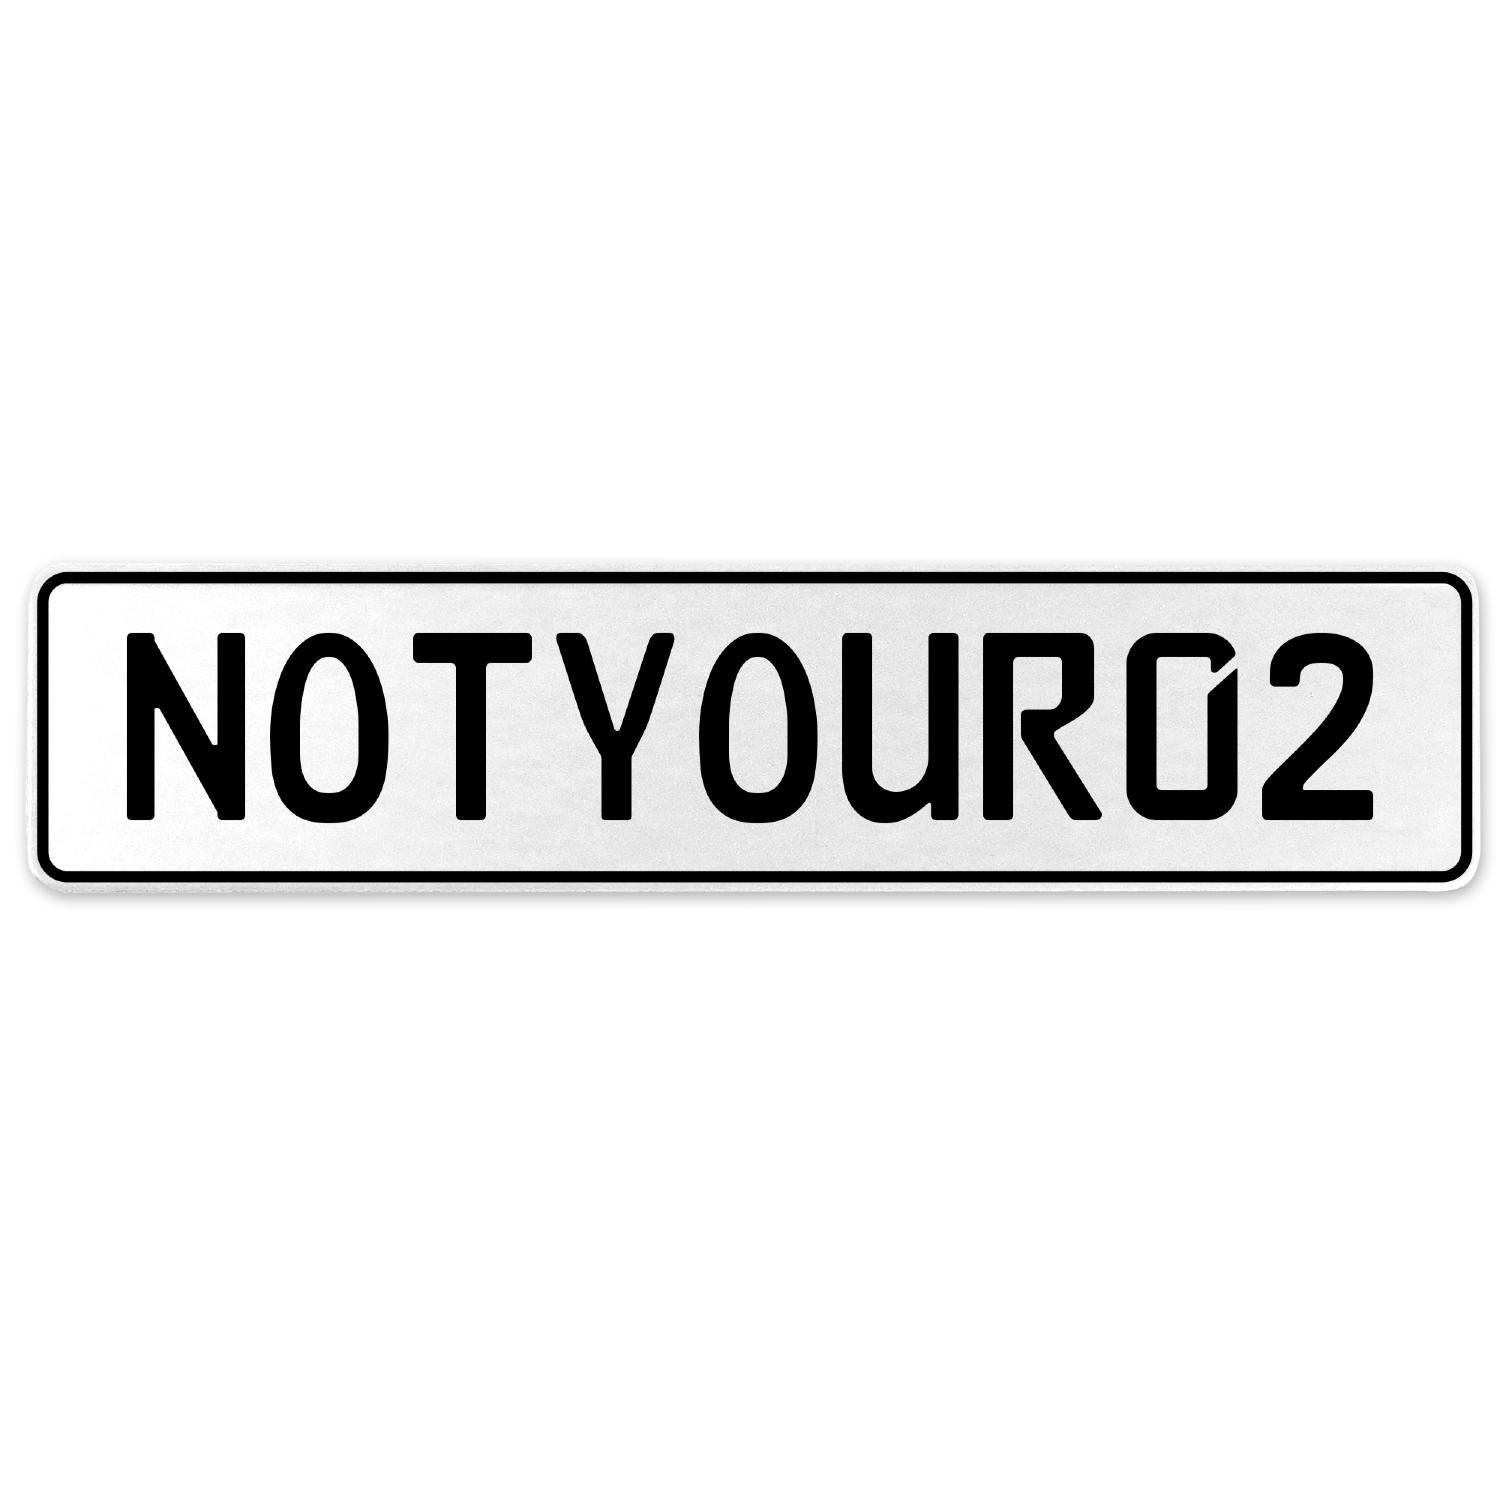 Vintage Parts 555391 NOTYOUR02 White Stamped Aluminum European License Plate